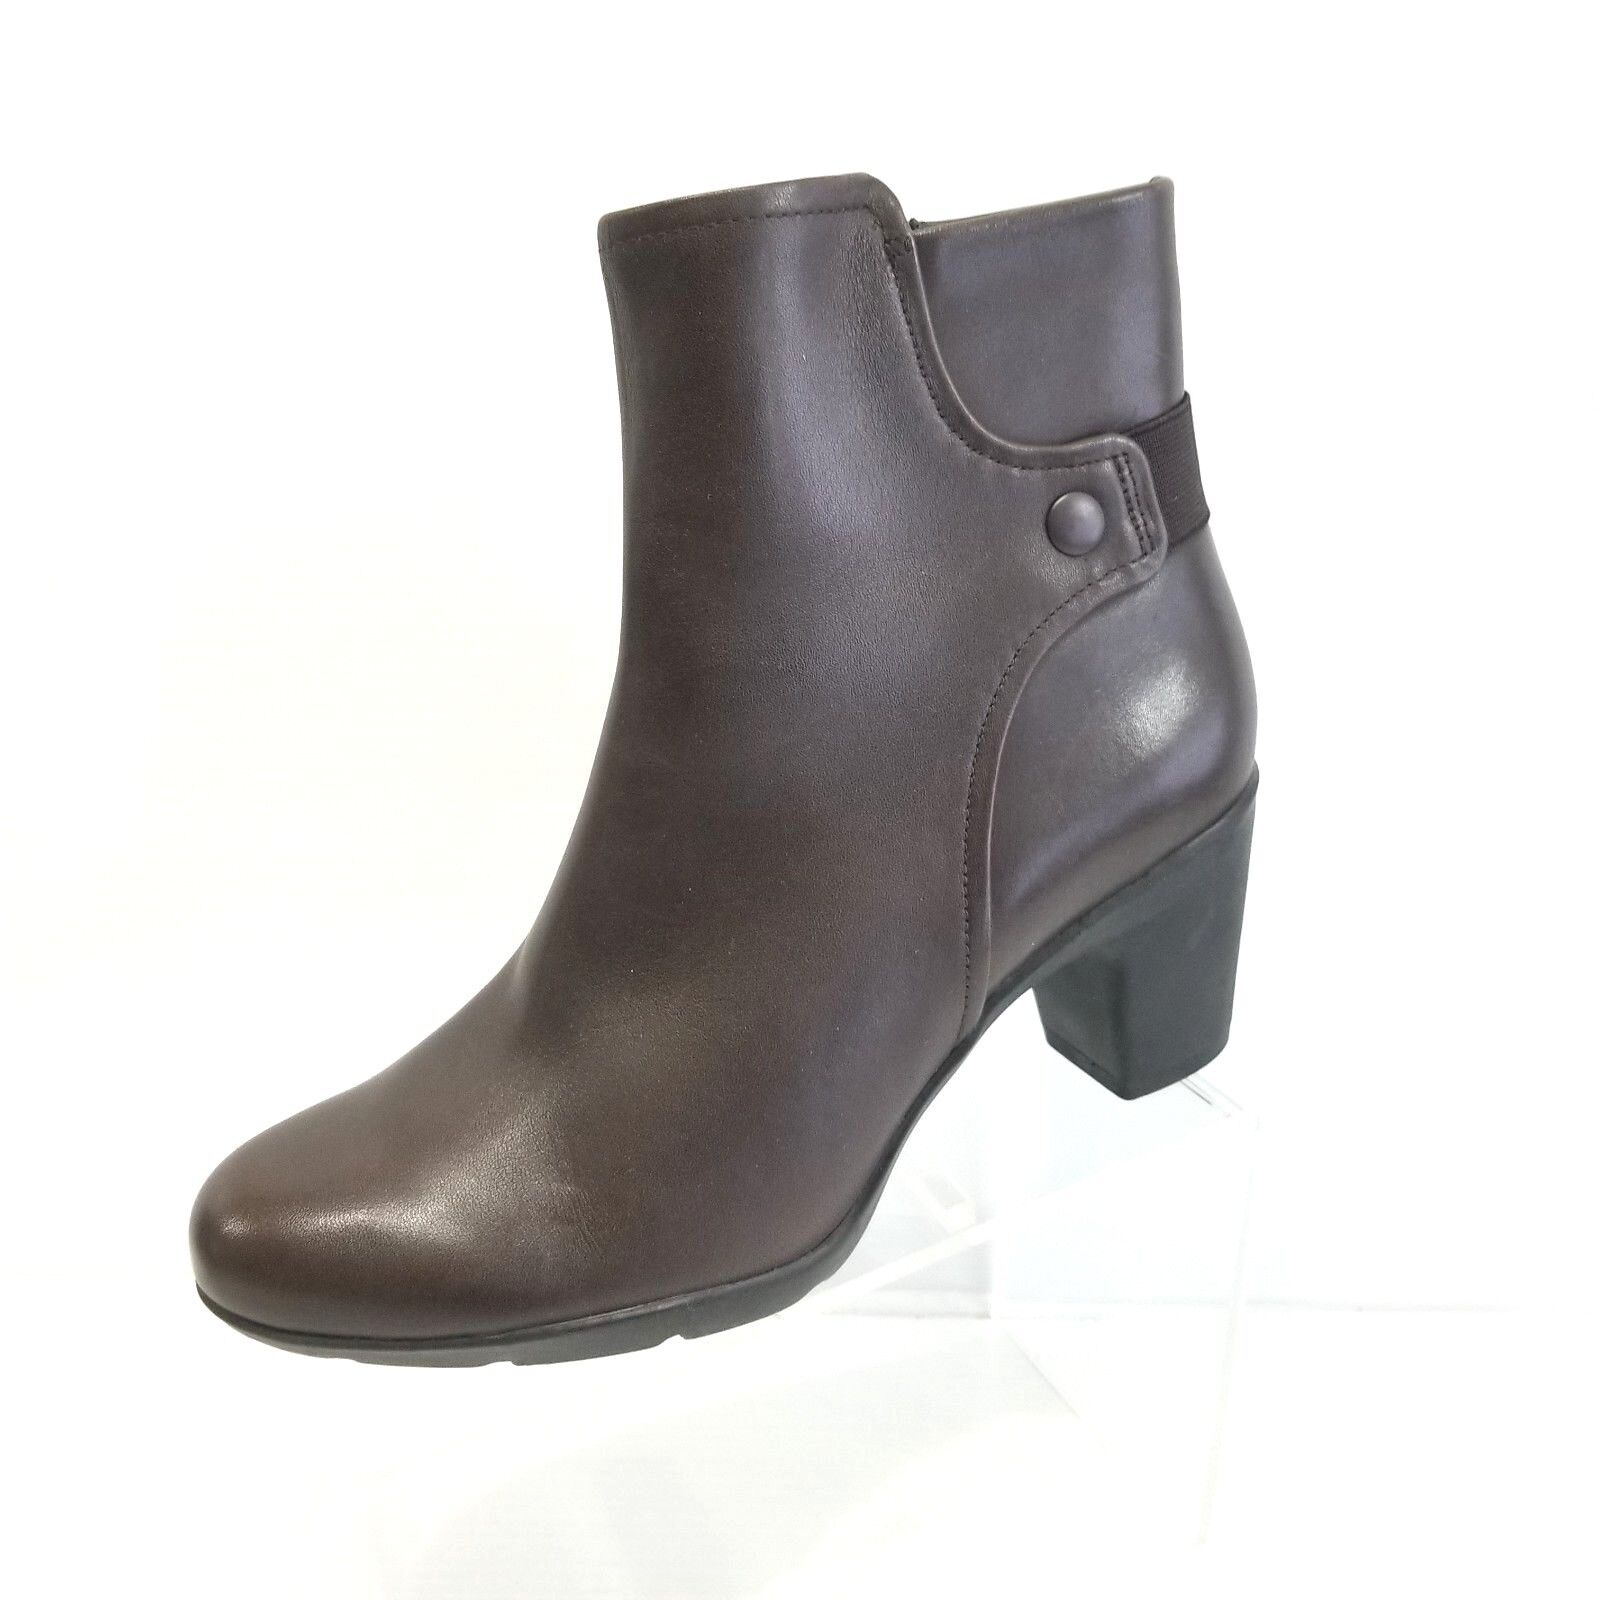 Clarks Women Lucette Jewel Dark Brown Leather Ankle Boots Rubber Sole Size 9.5M